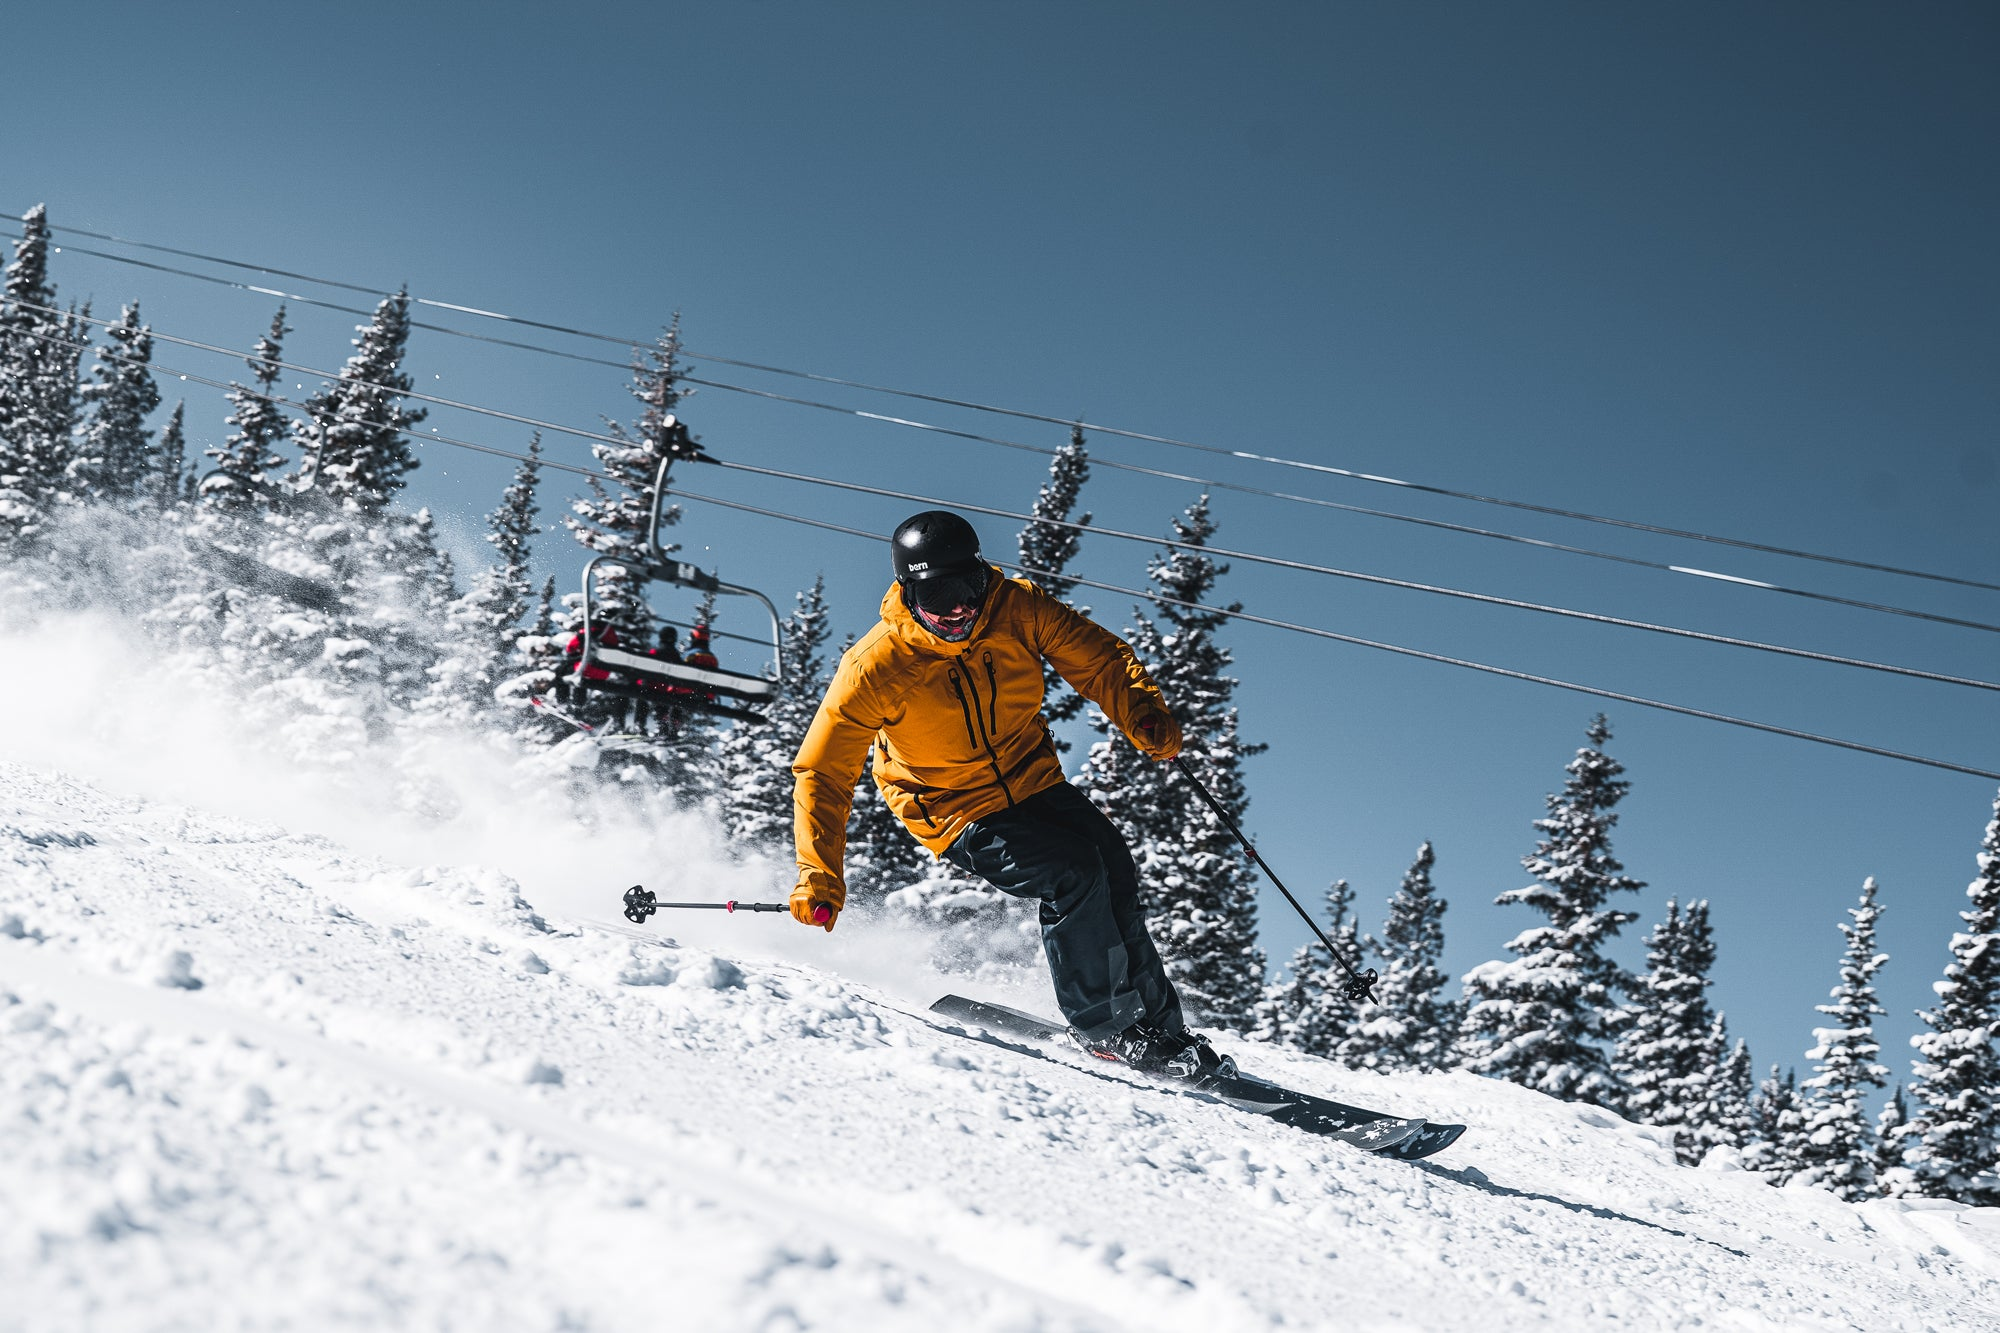 Atomic Used Skiers Like You To Create Its New All-Mountain Ski Line